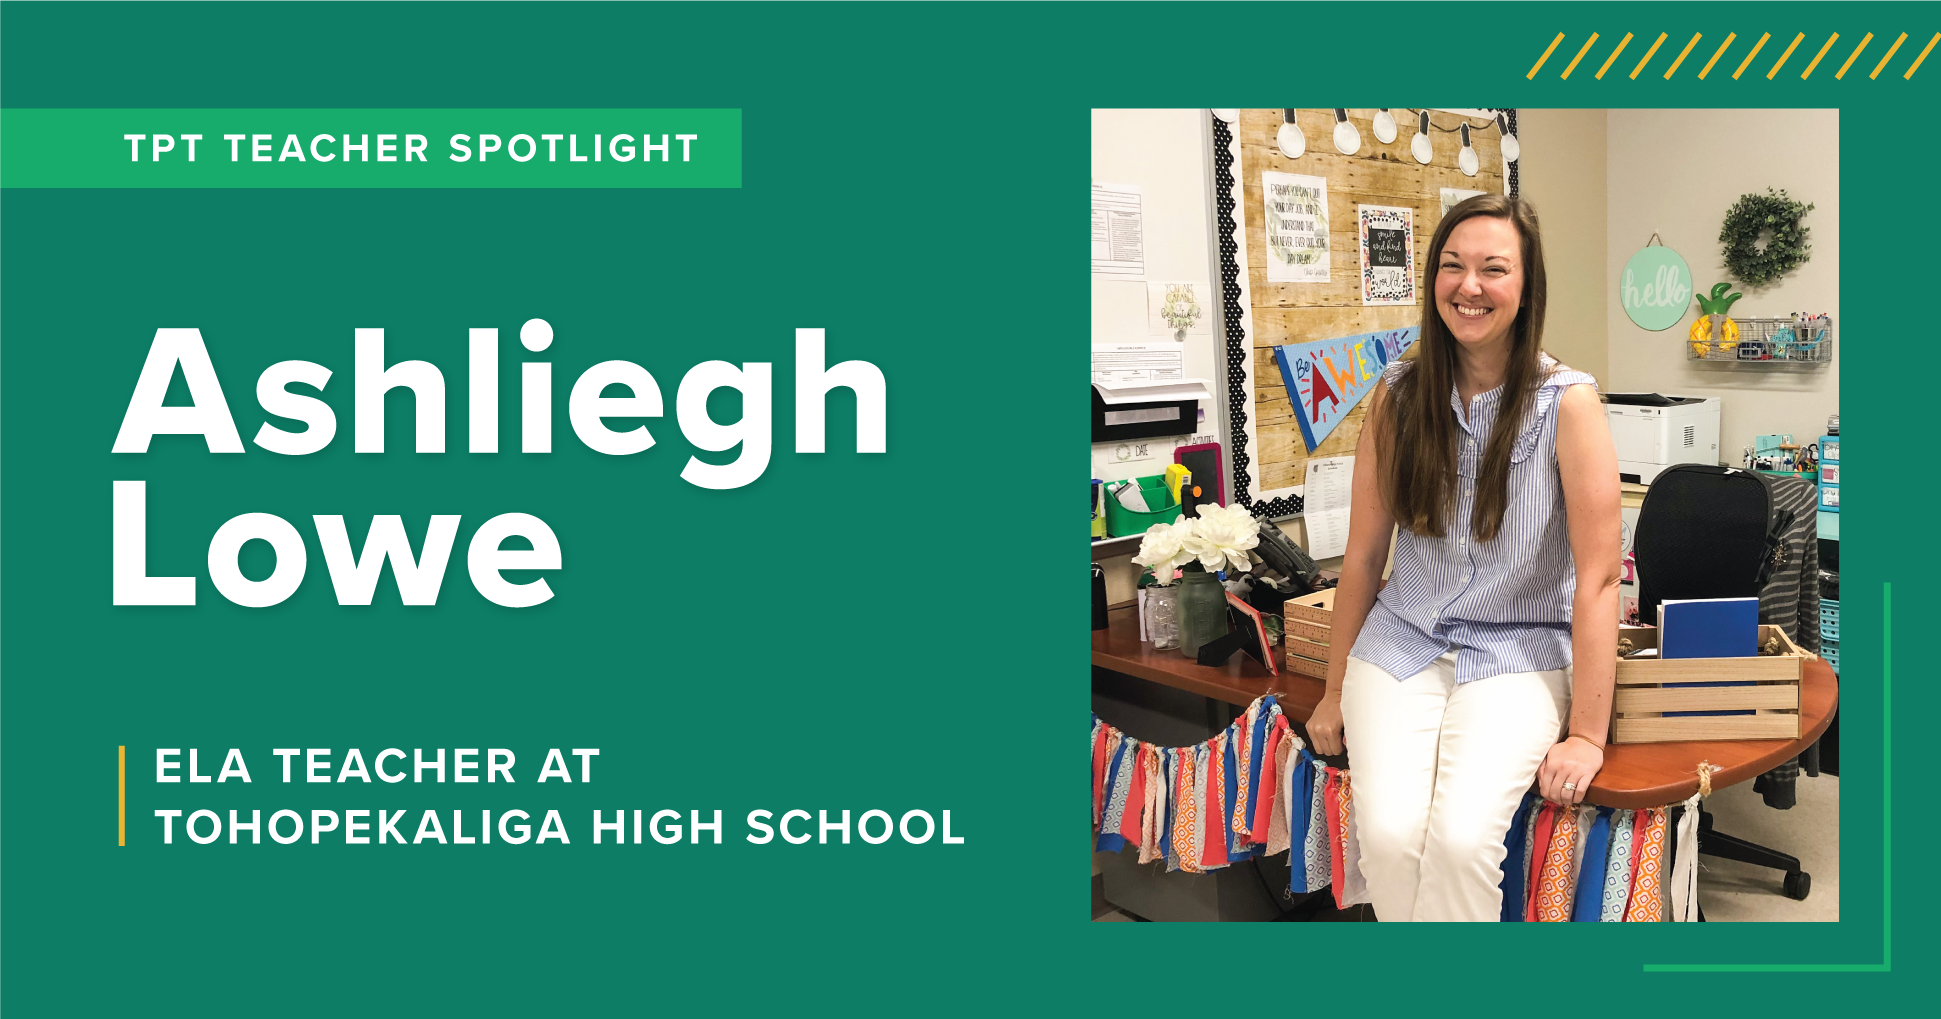 A TpT Teacher Spotlight on Ashliegh Lowe, a high school ELA teacher at Tohopekaliga High School.